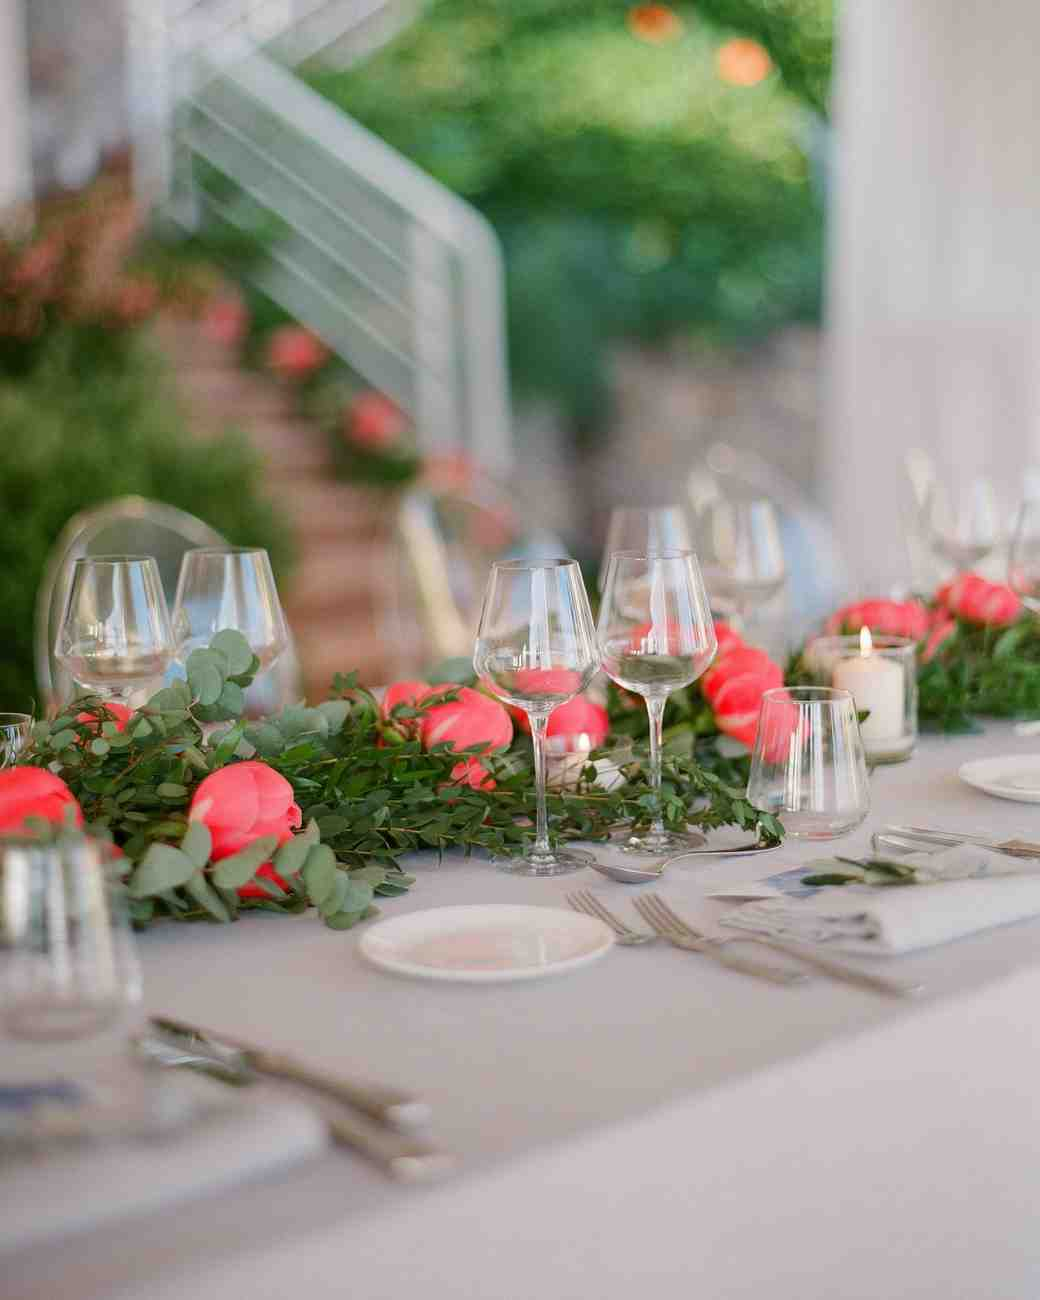 Wedding Flower Arrangements: 36 Simple Wedding Centerpieces